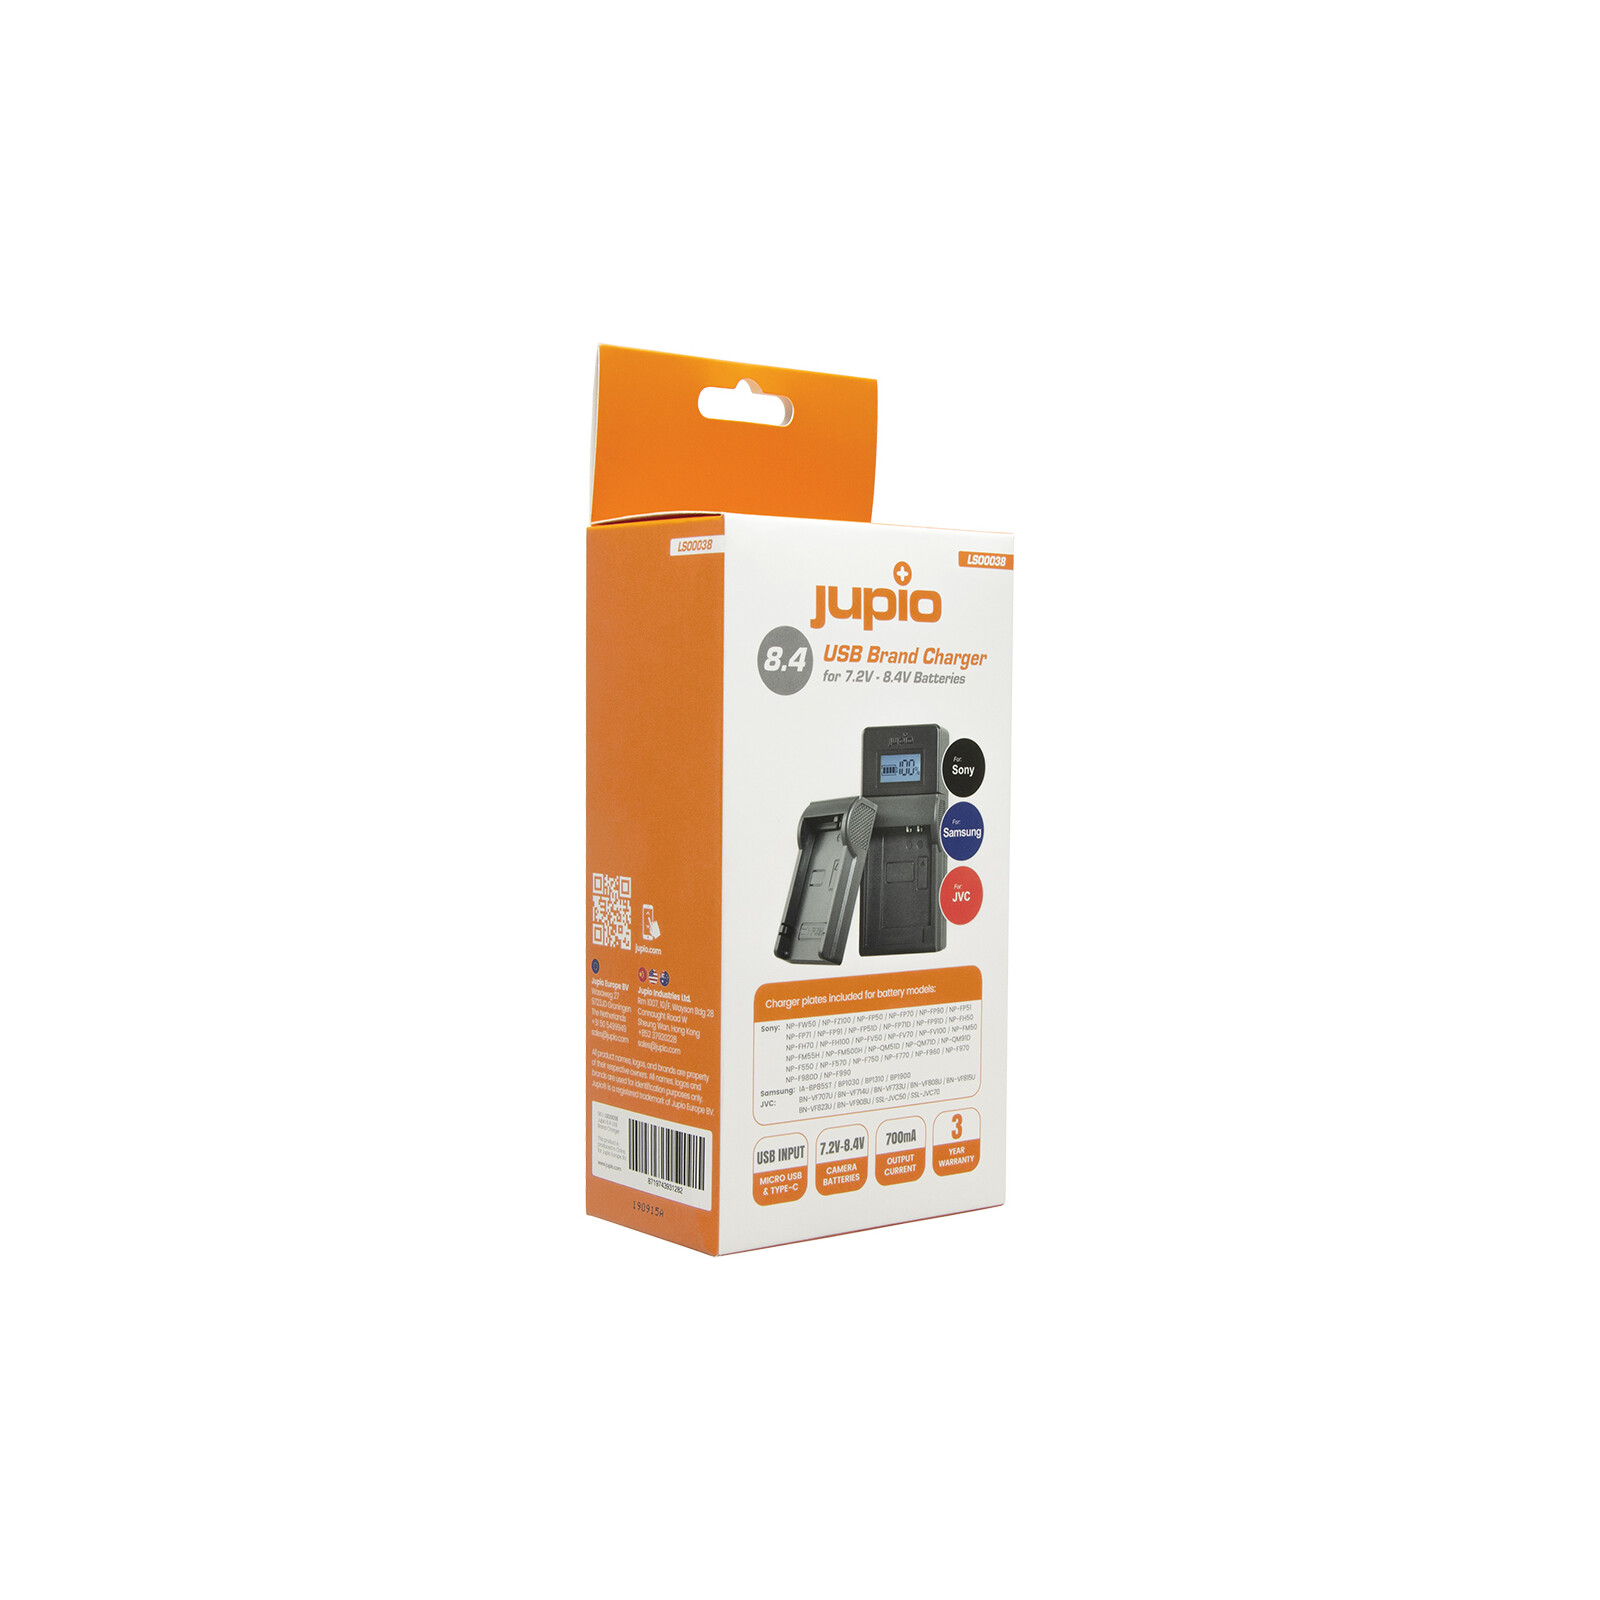 Jupio Brand Charger for Sony, Samsung, JVC 7.2-8.4